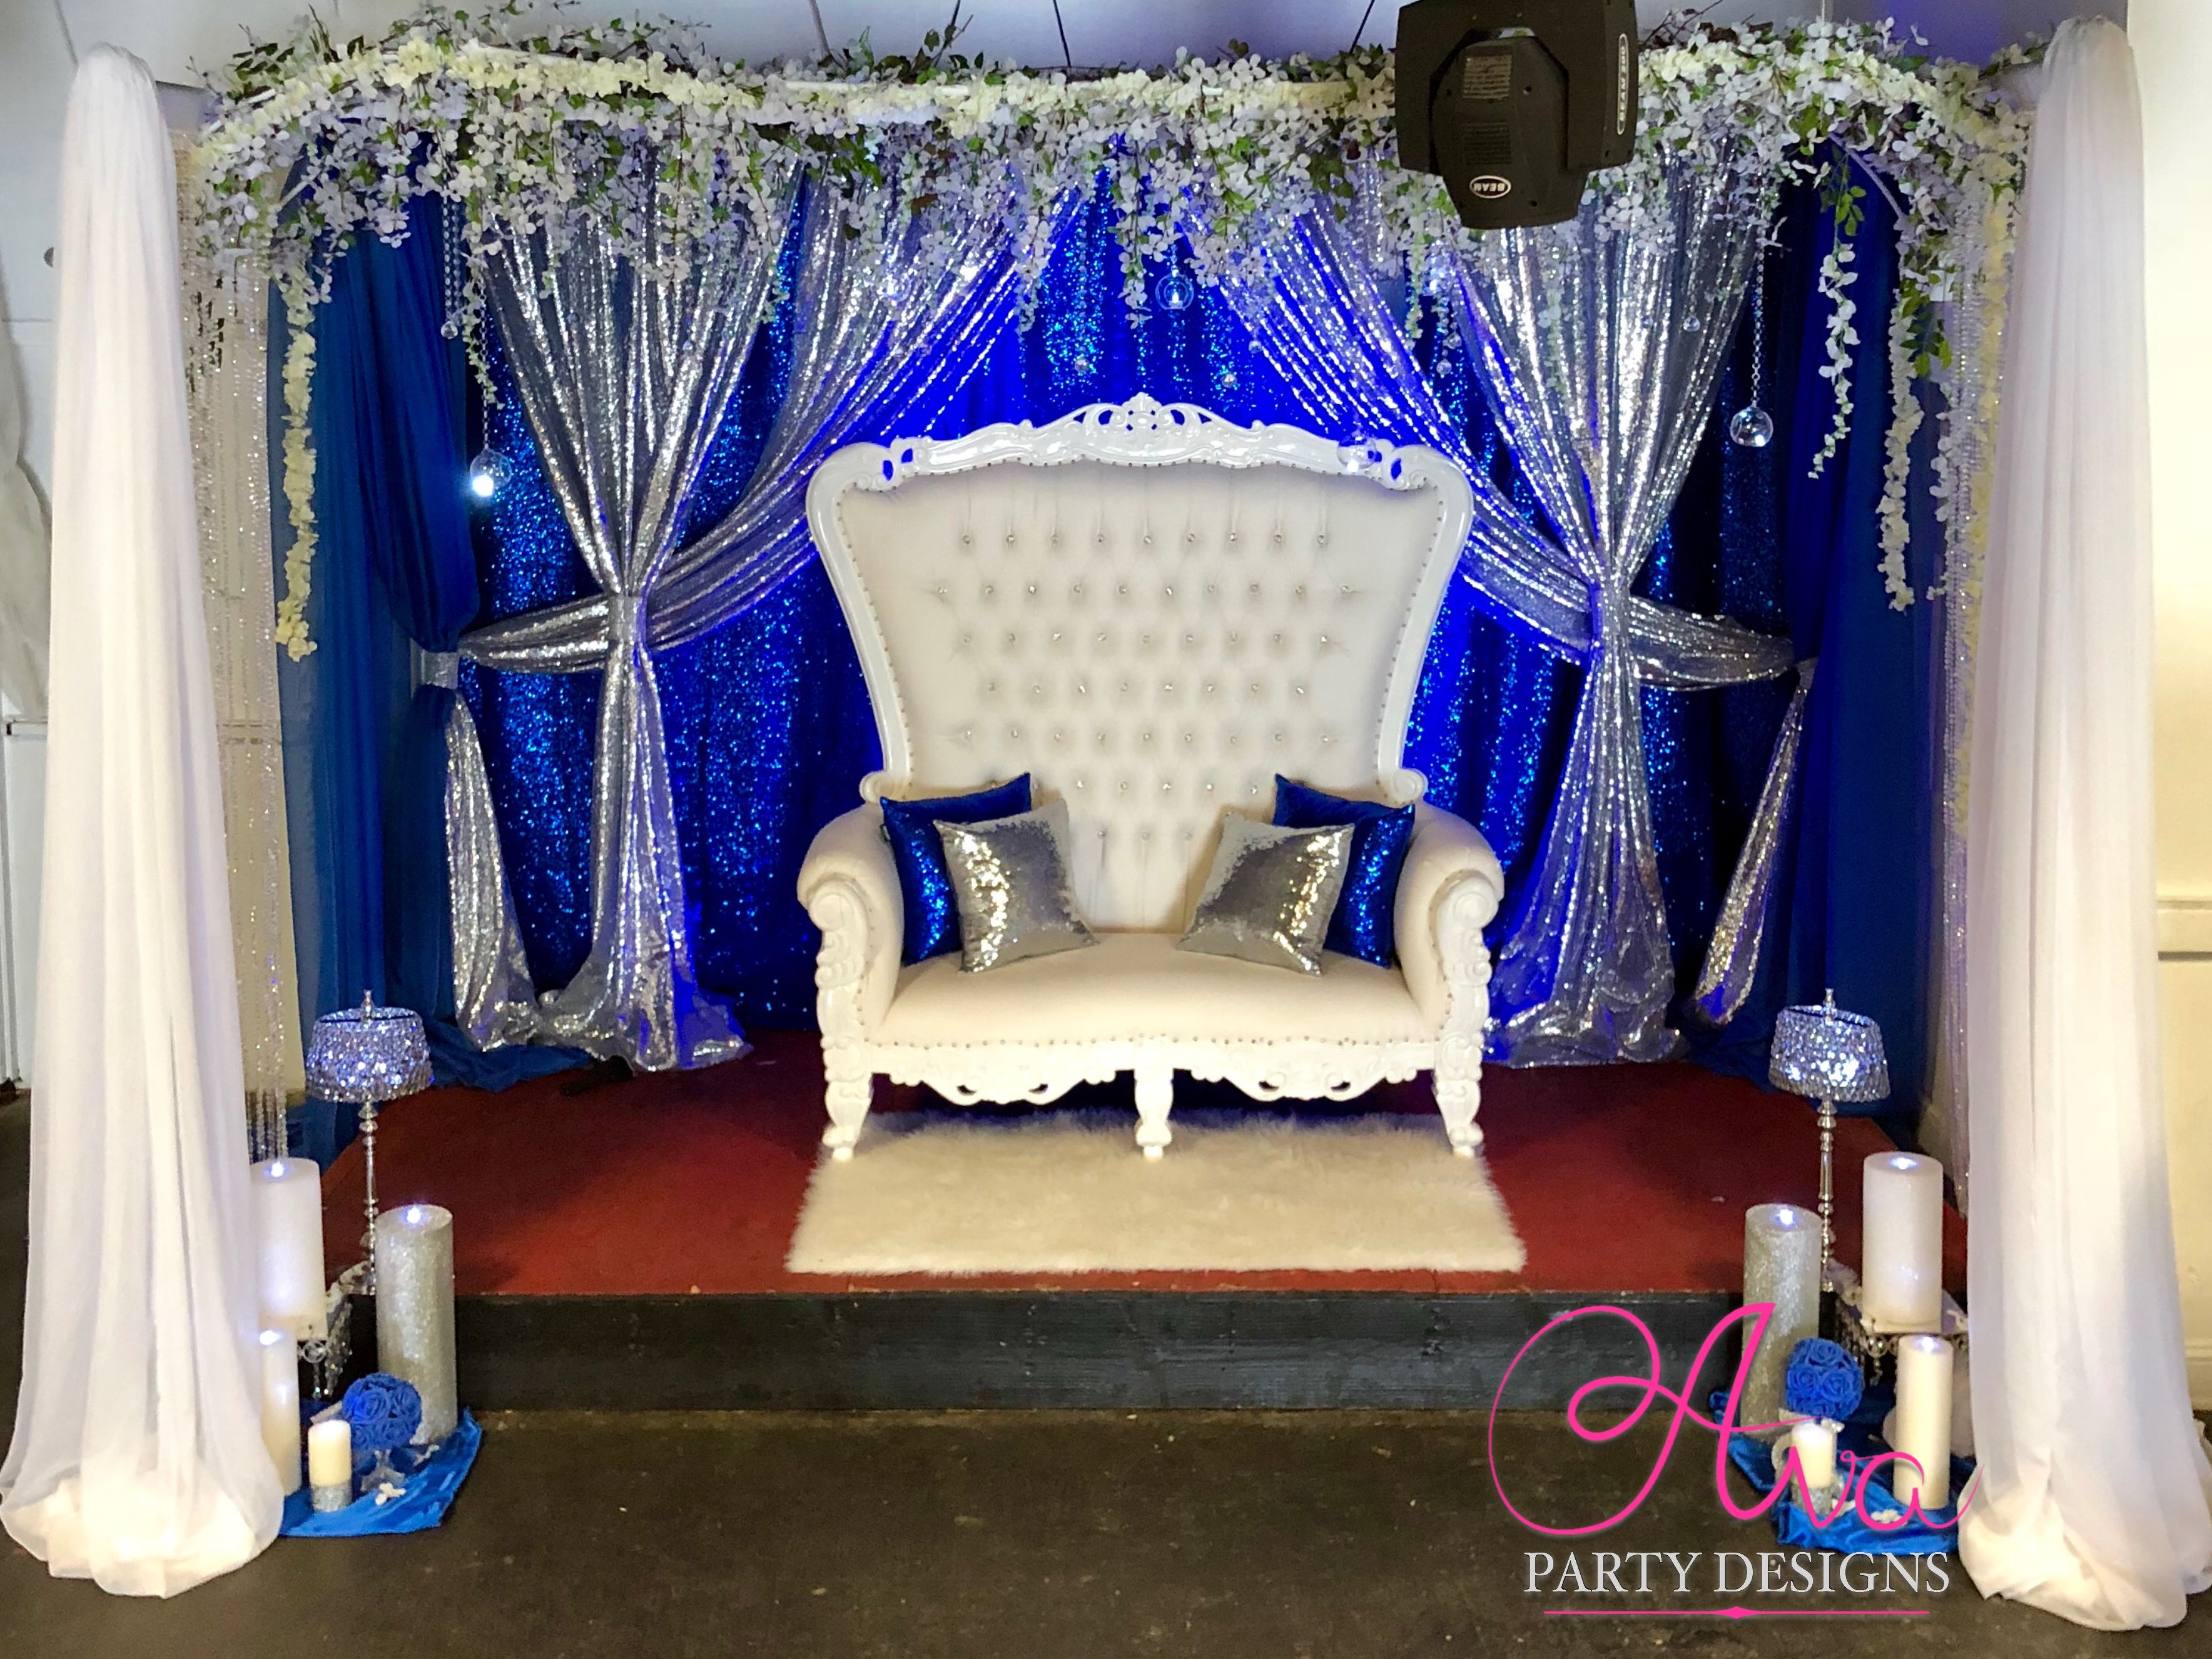 baby rentals rental full blue conjunction royal brooklyn themes shower loveseat philadelphia diy as well with of chair for in rent nj plus size